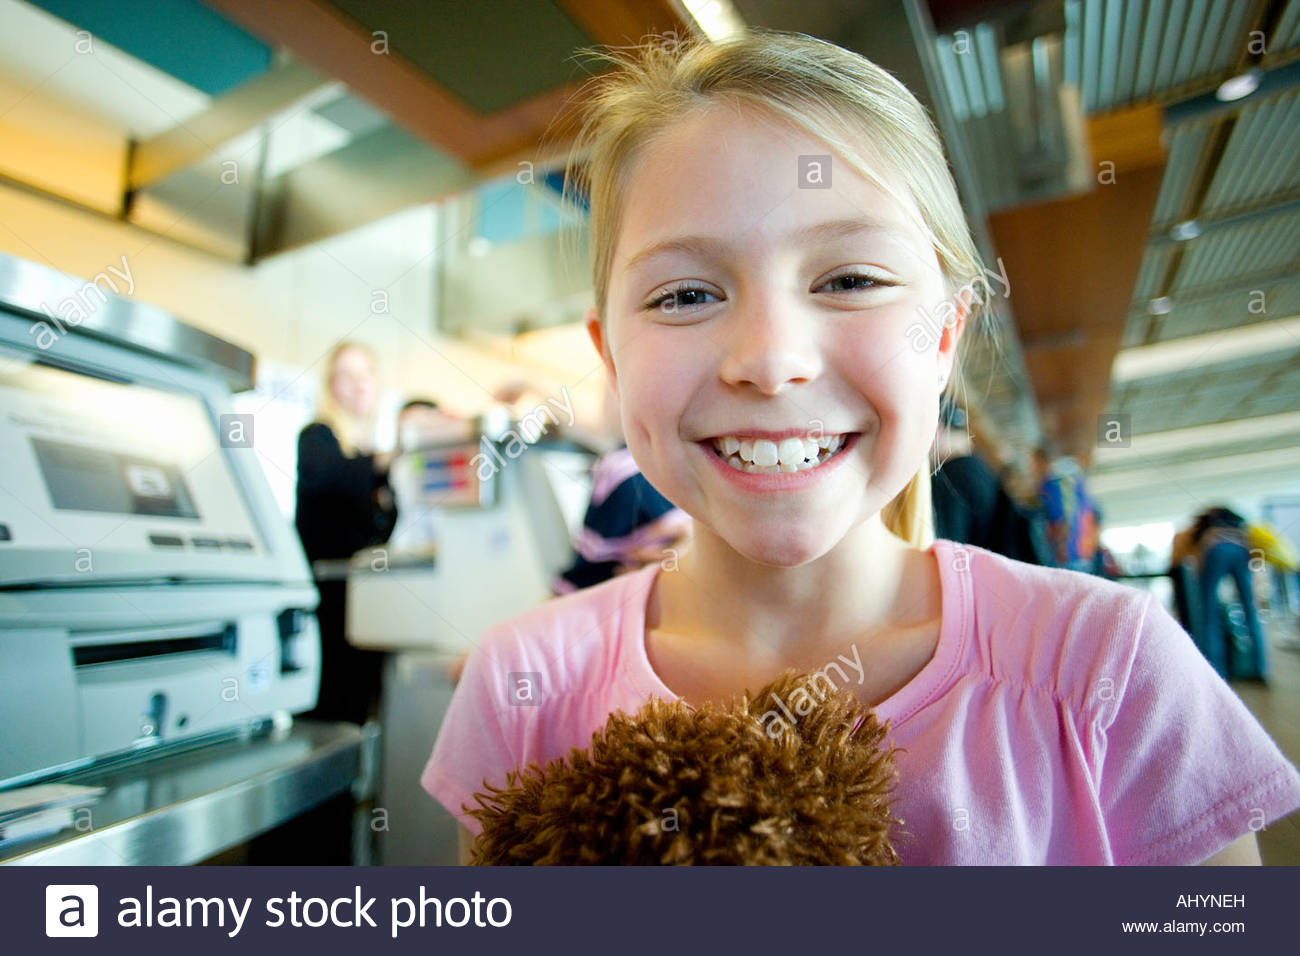 Blonde girl  standing near airport check-in counter, holding soft toy, smiling, close-up, portrait, focus on foreground - Stock Image